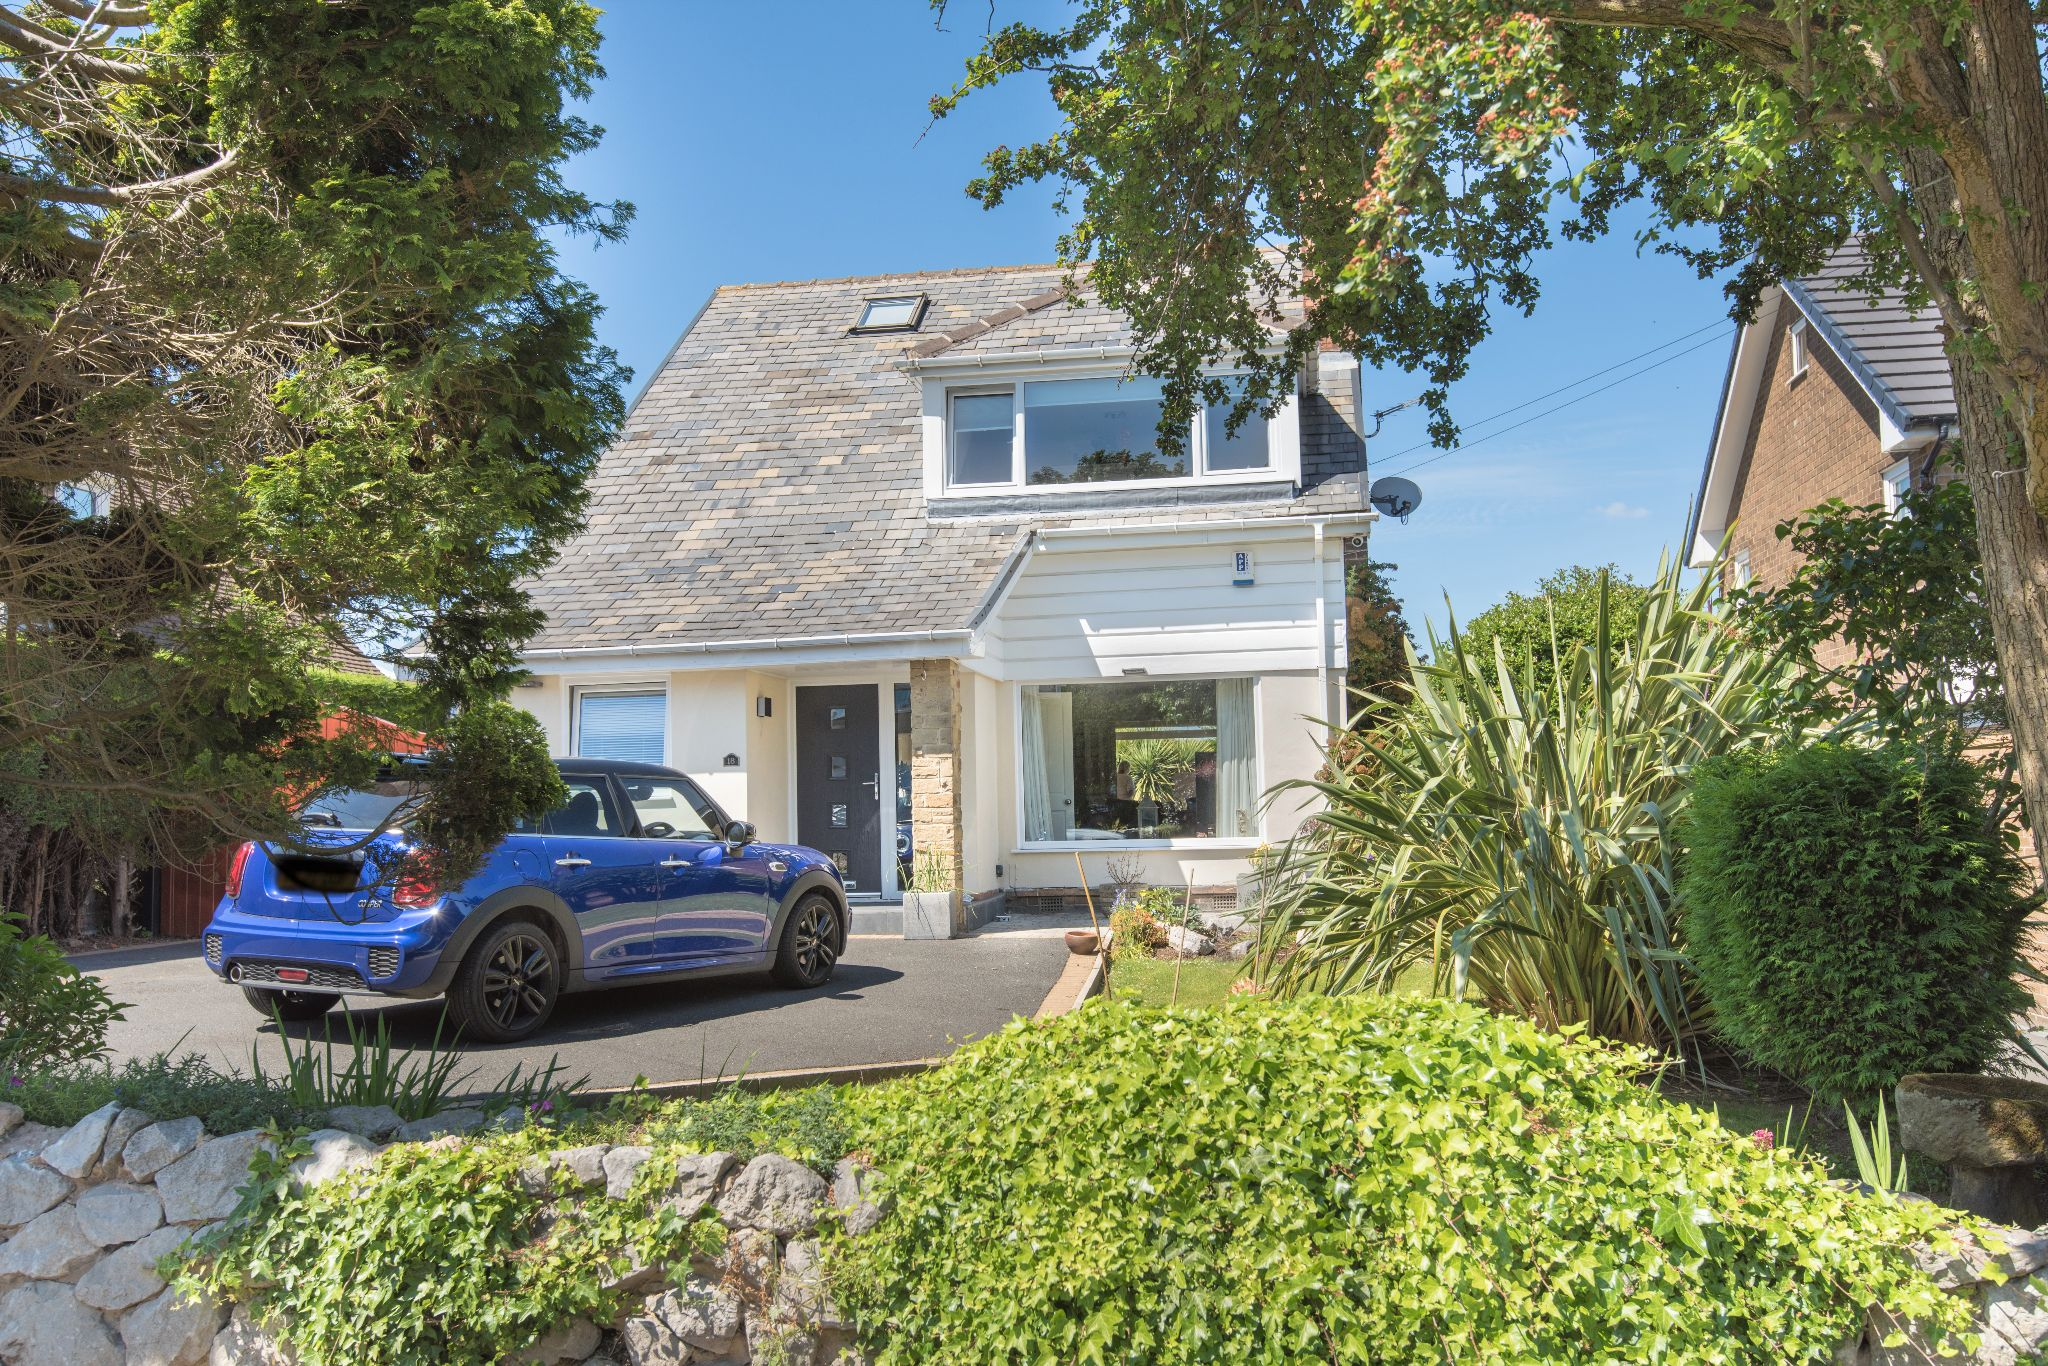 4 Bedroom Detached House For Sale - Photograph 39